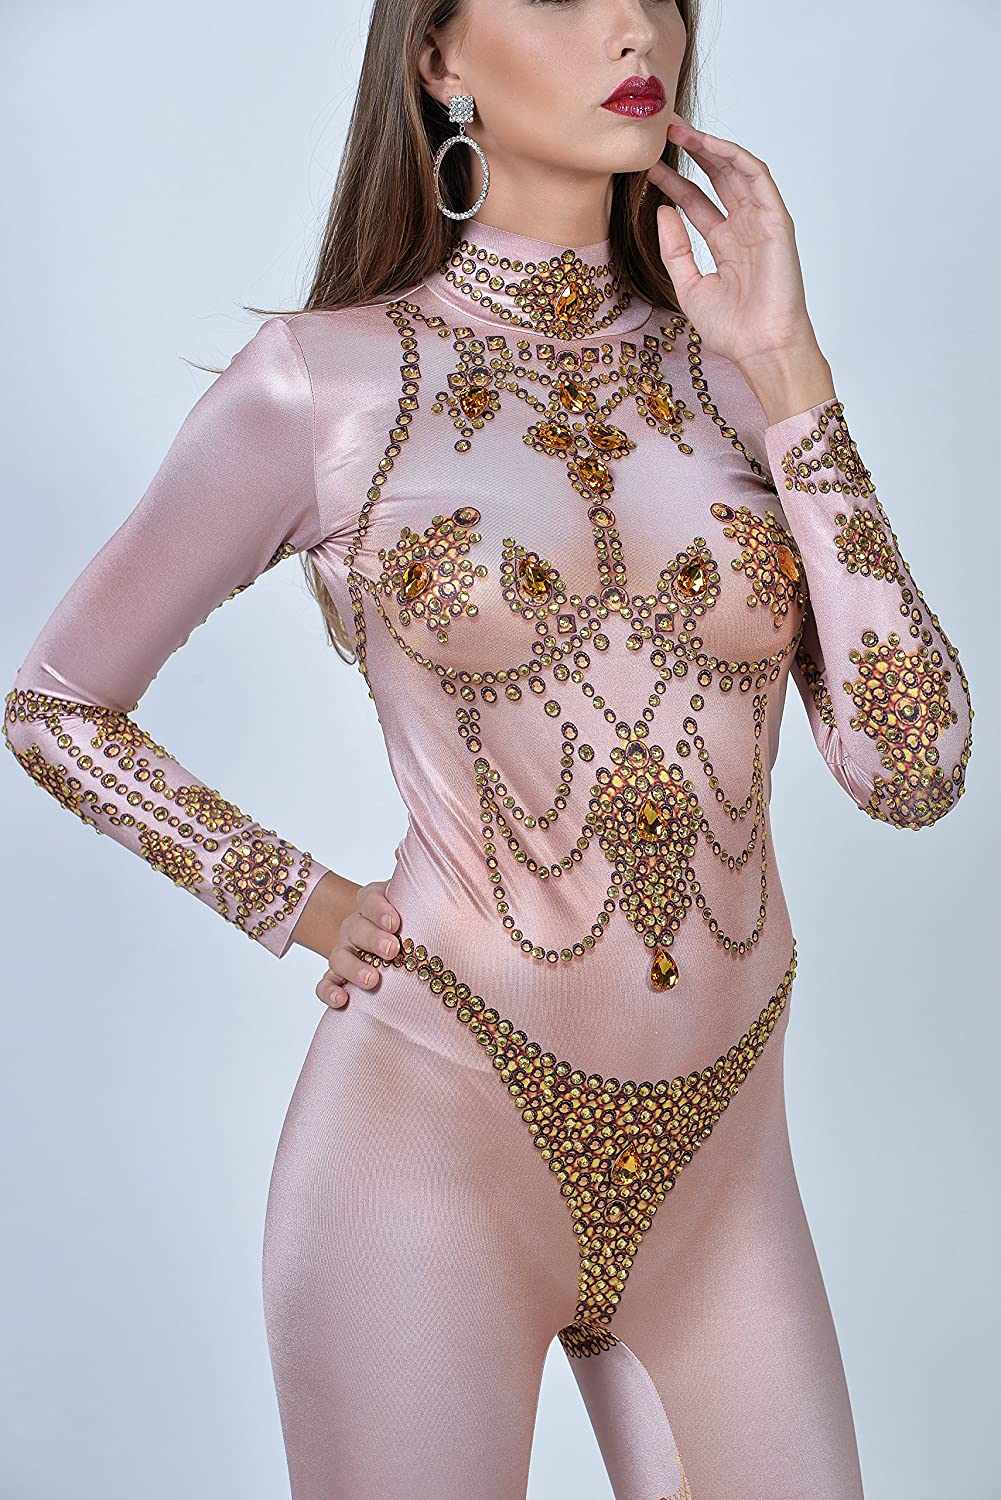 07a0605f92d Amazon.com  Charismatico Gold Crystallised Rhinestone 3D Print Cleavage  Showgirl Bodycon Clubwear Dance Romper Catsuit Jumpsuit US2-US6  Clothing